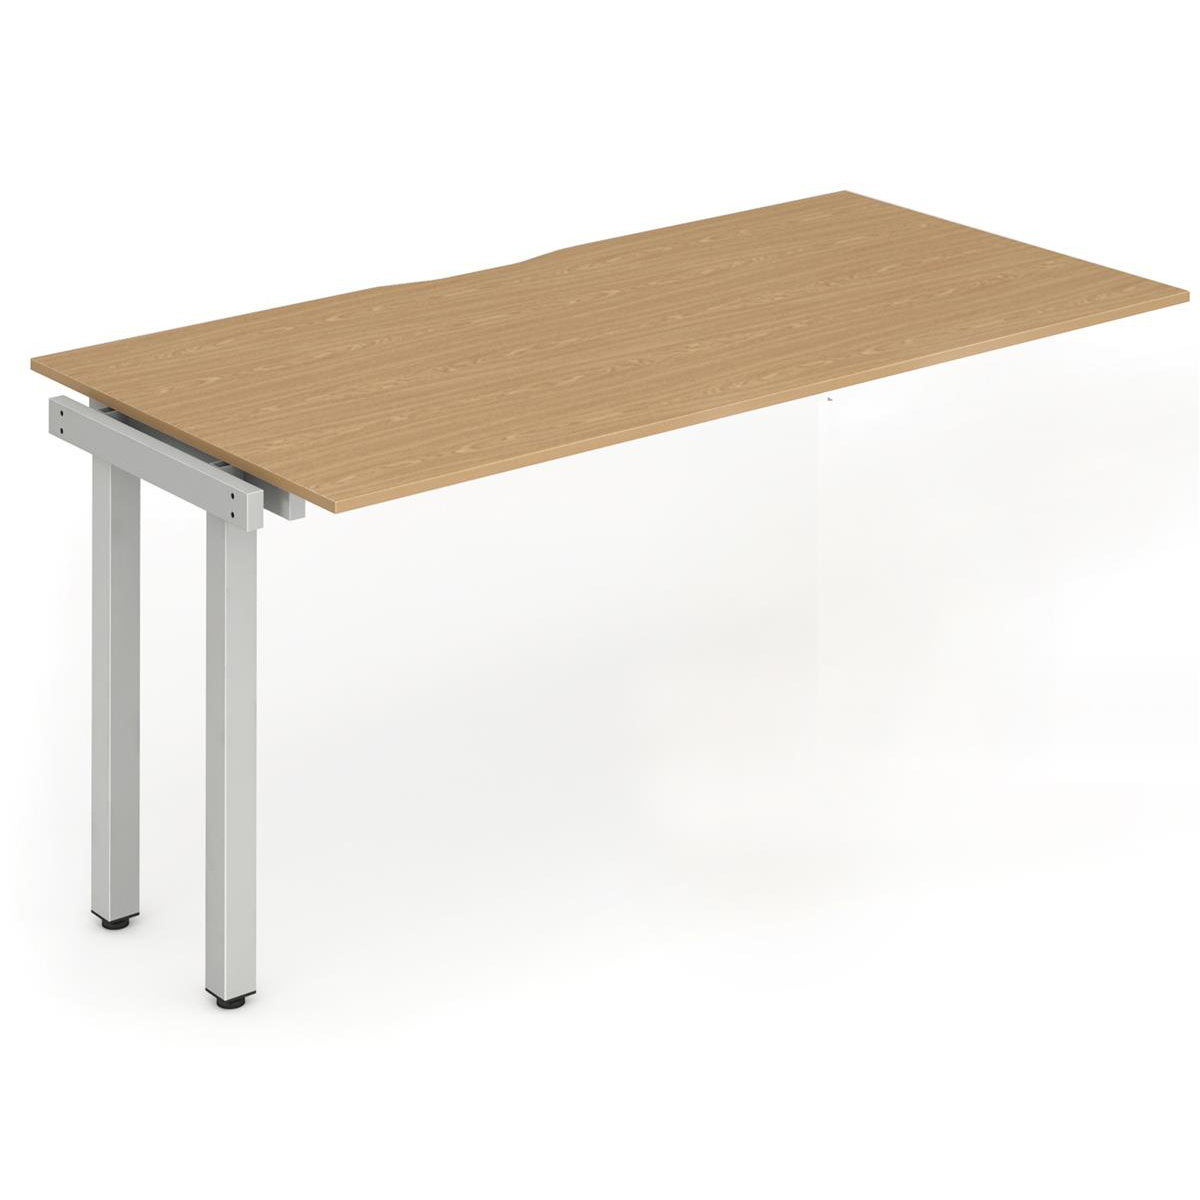 Trexus Bench Desk Single Extension Silver Leg 1600x800mm Oak Ref BE328